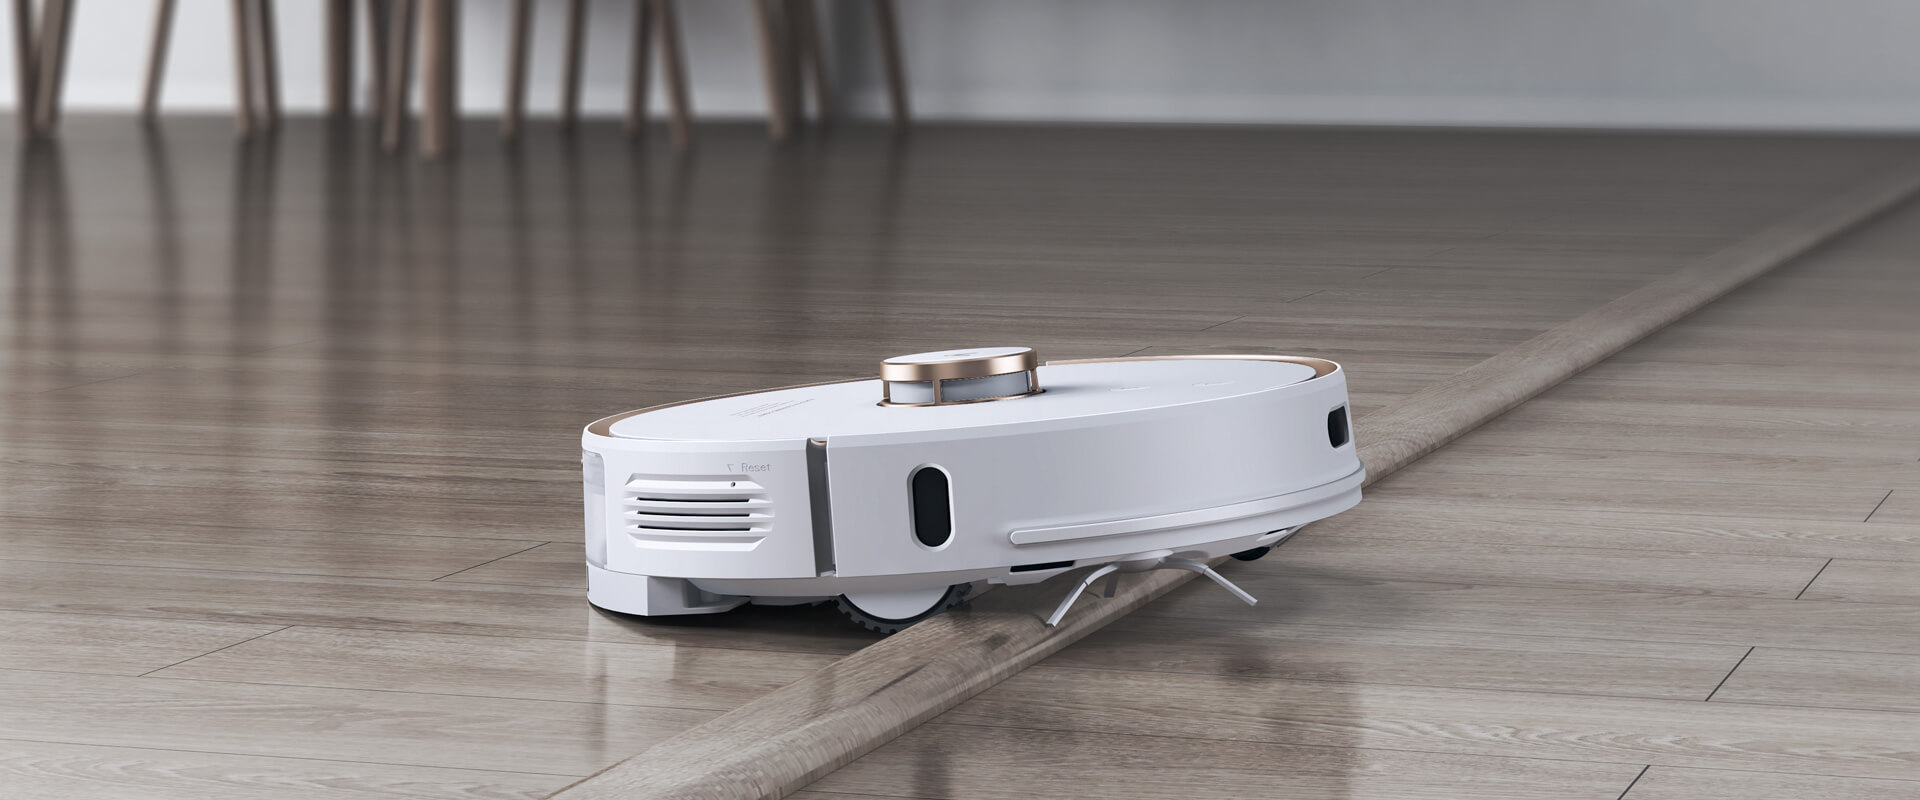 viomi alpha s9 automatic vacuum with Obstacle Climbing